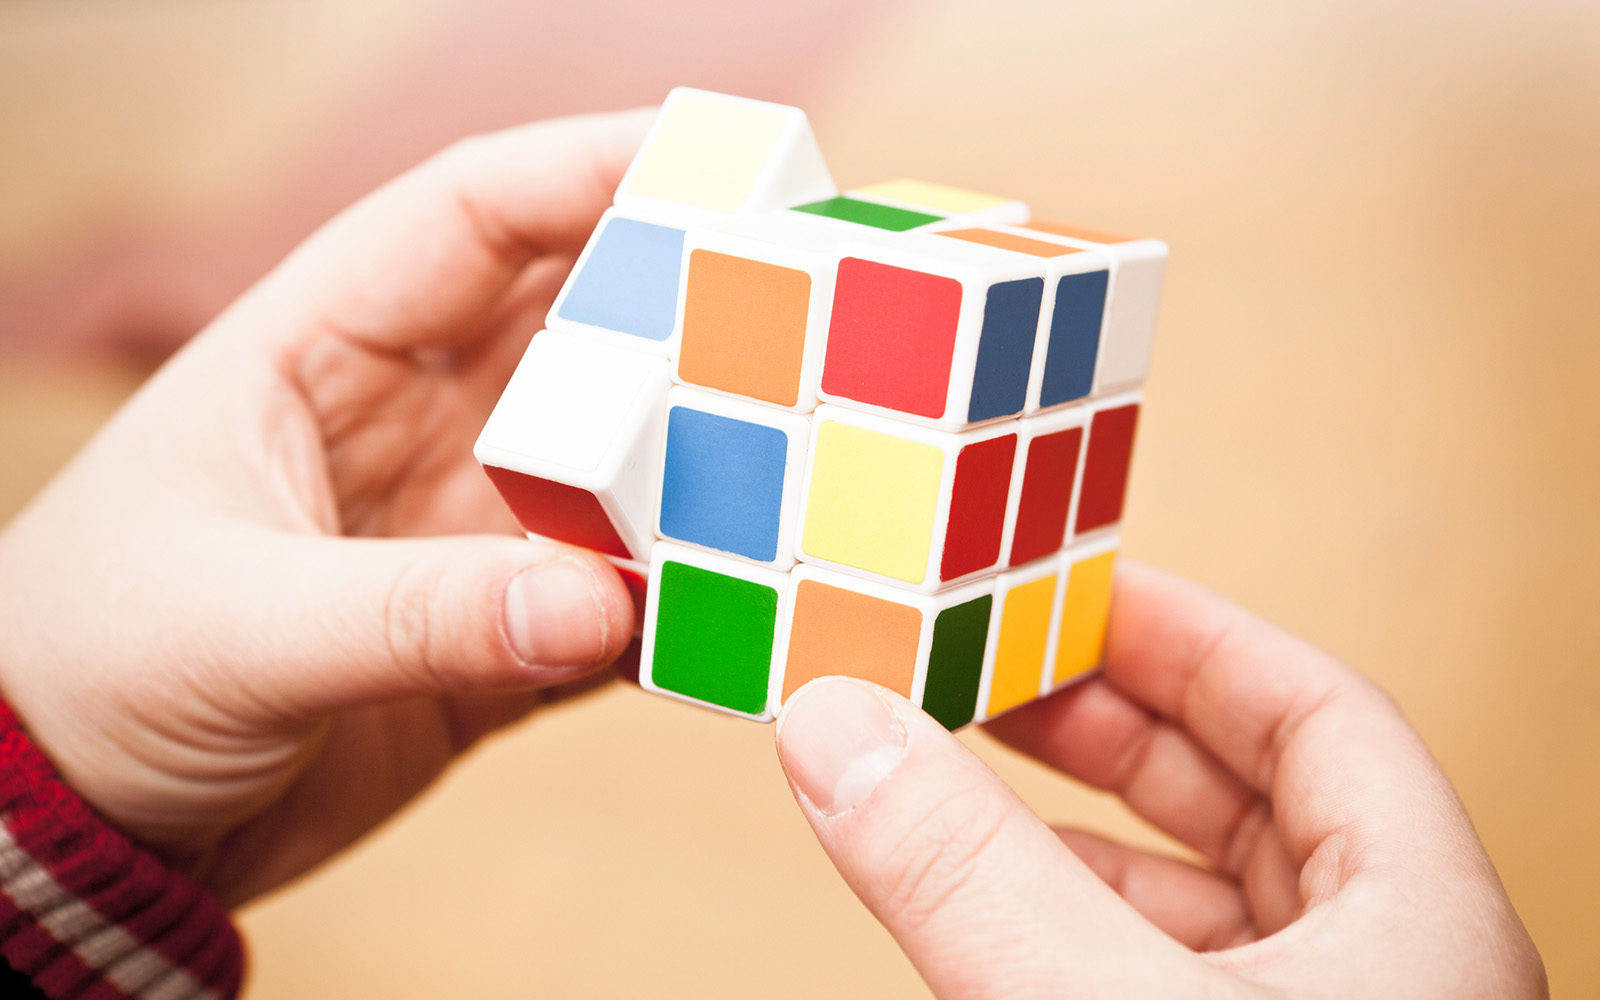 """Shanghai, China - Feb 12, 2012: Hands playing a Rubik's Cube game.Rubik's Cube is a 3D mechanical puzzle invented in 1974 by Hungarian sculptor and professor of architecture Erna Rubik"""